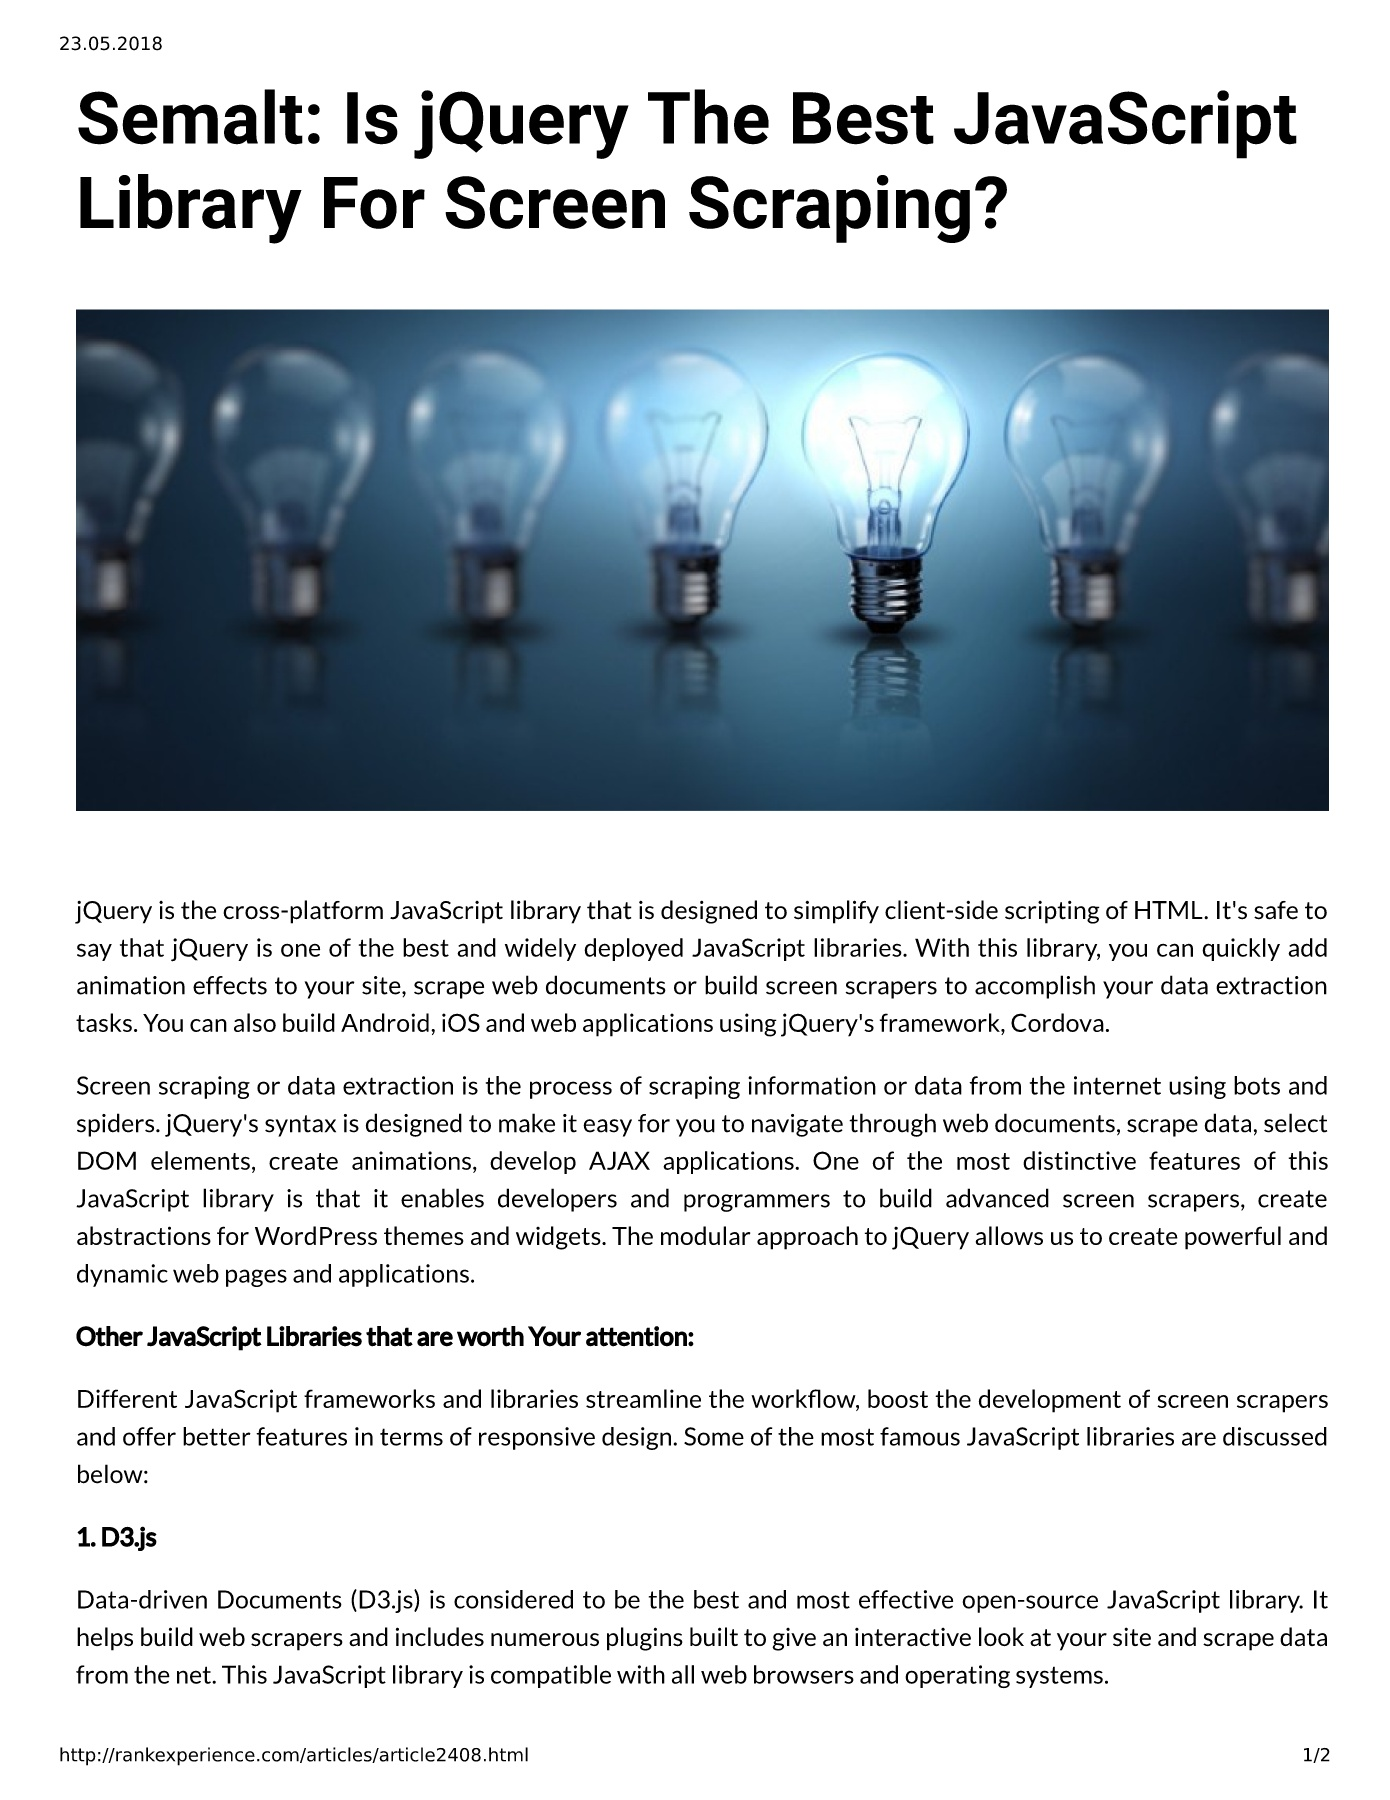 Semalt: Is jQuery The Best JavaScript Library For Screen